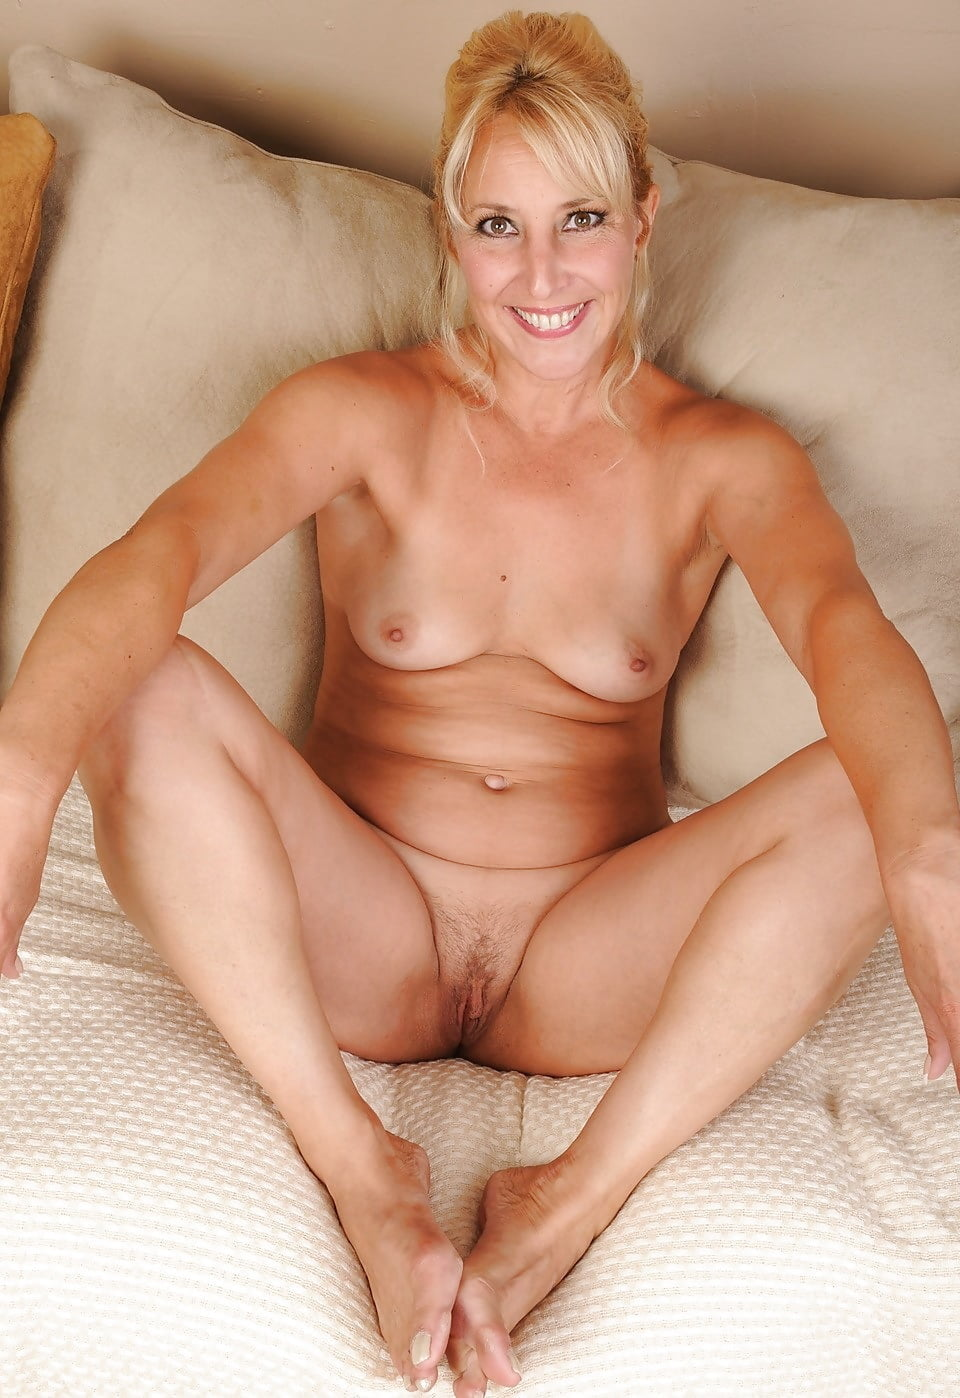 Whitney mature nude pictures, kelly segel naked ass pictures